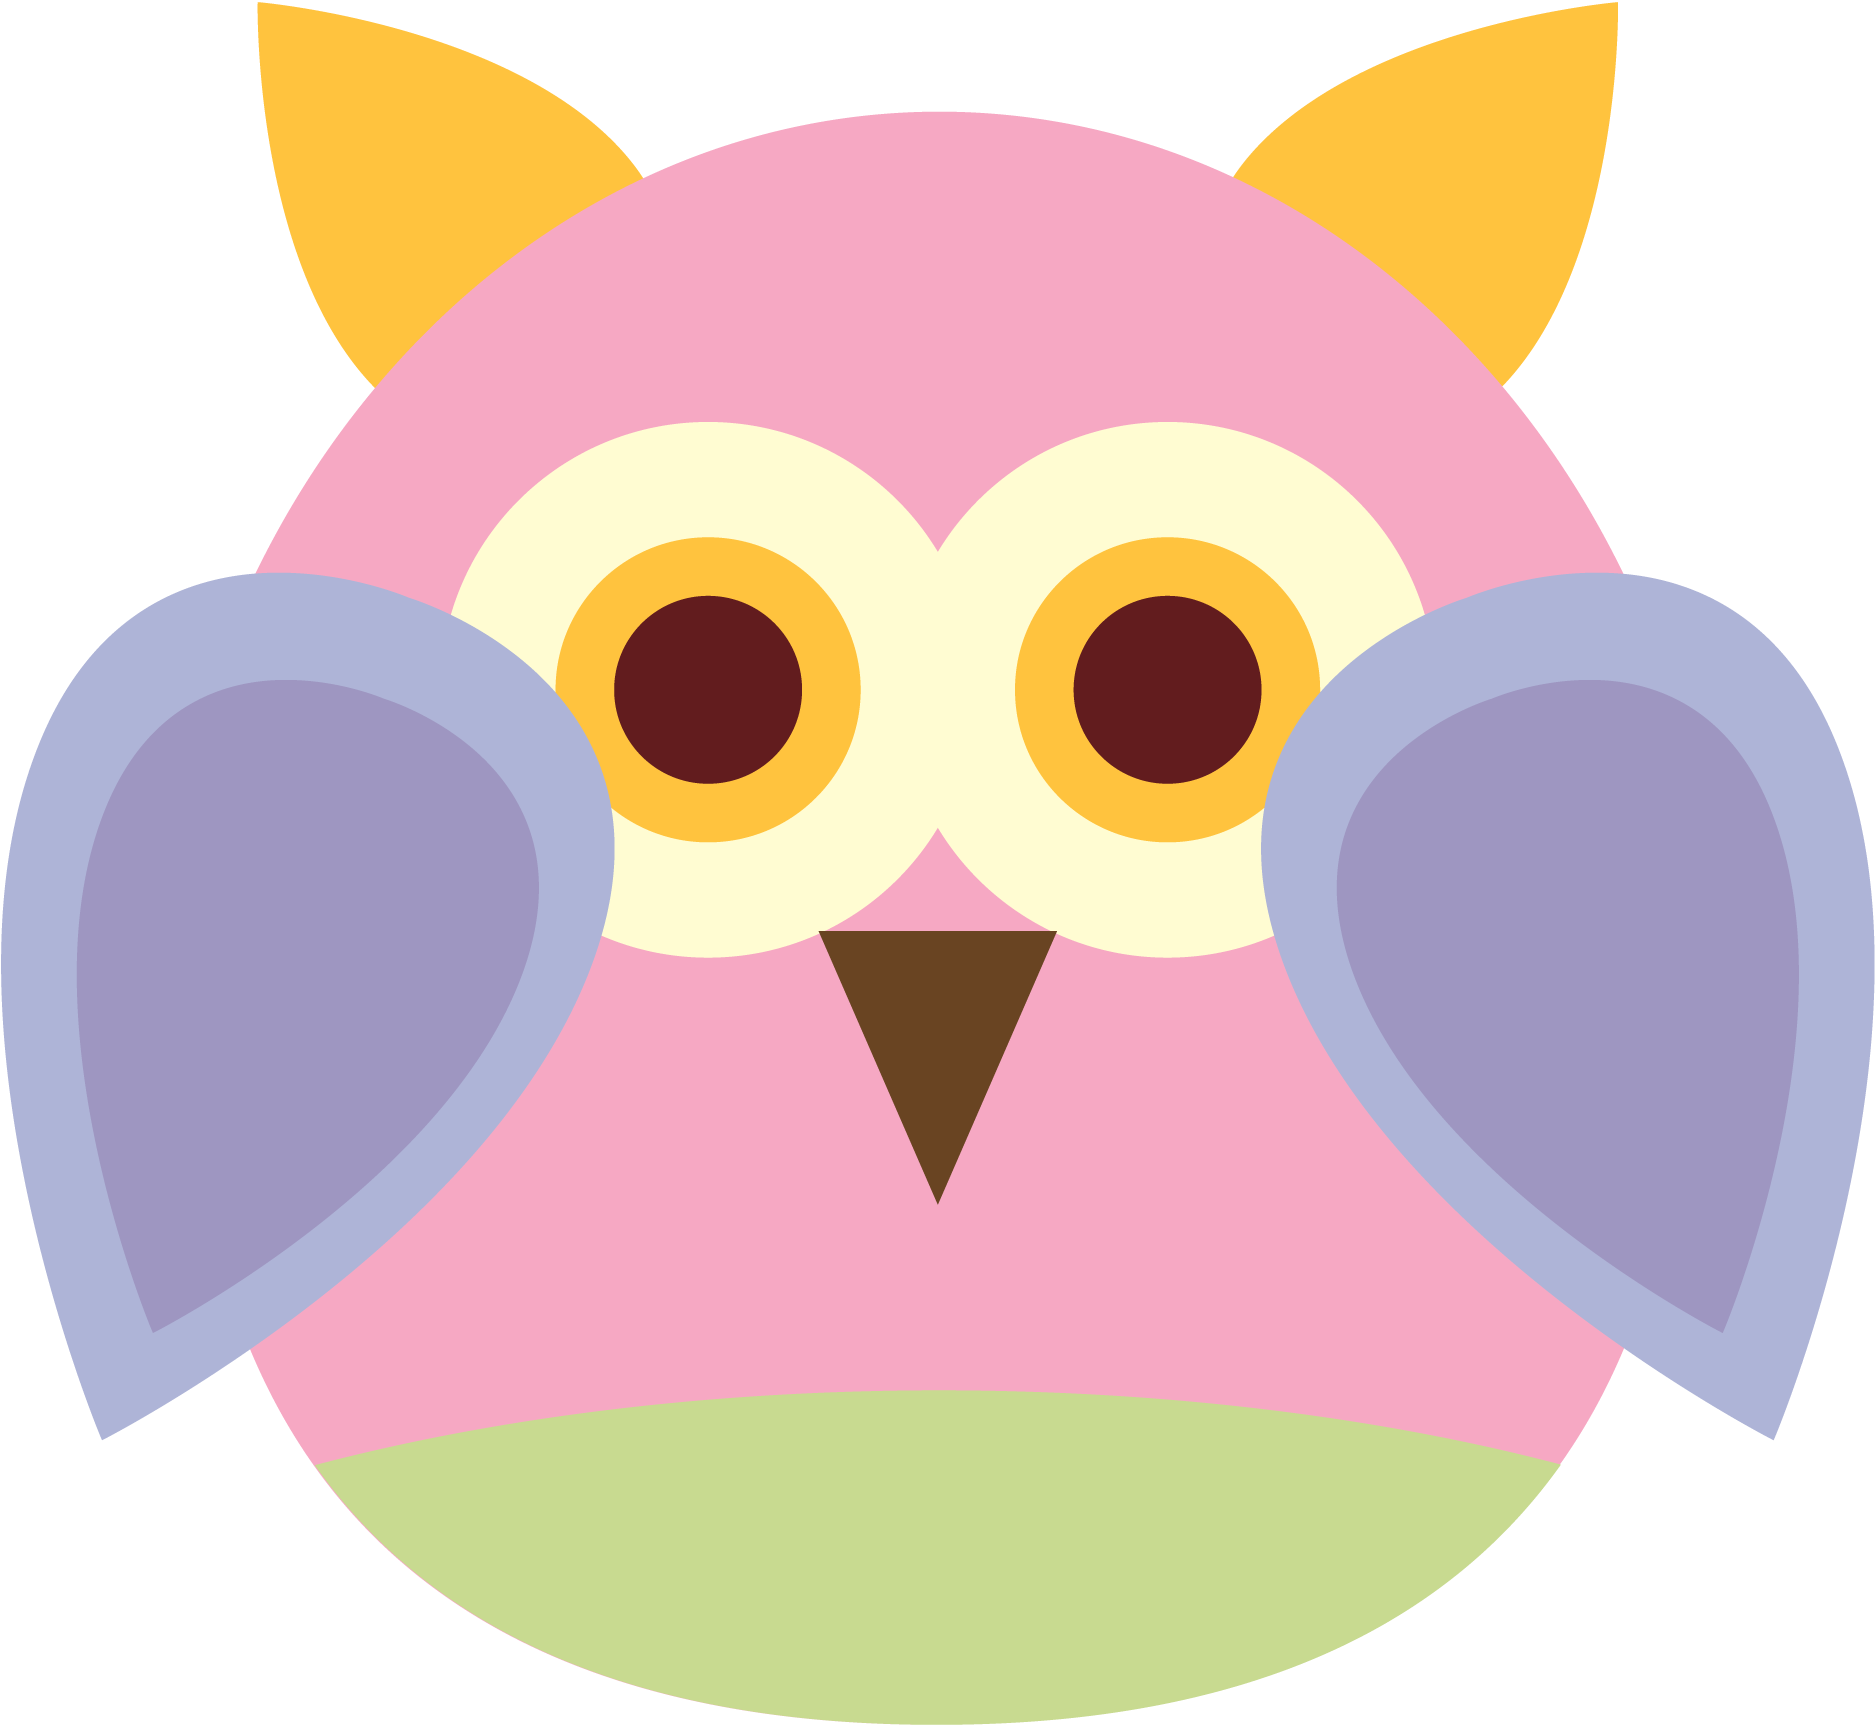 Free owl images download. Owls clipart wallpaper